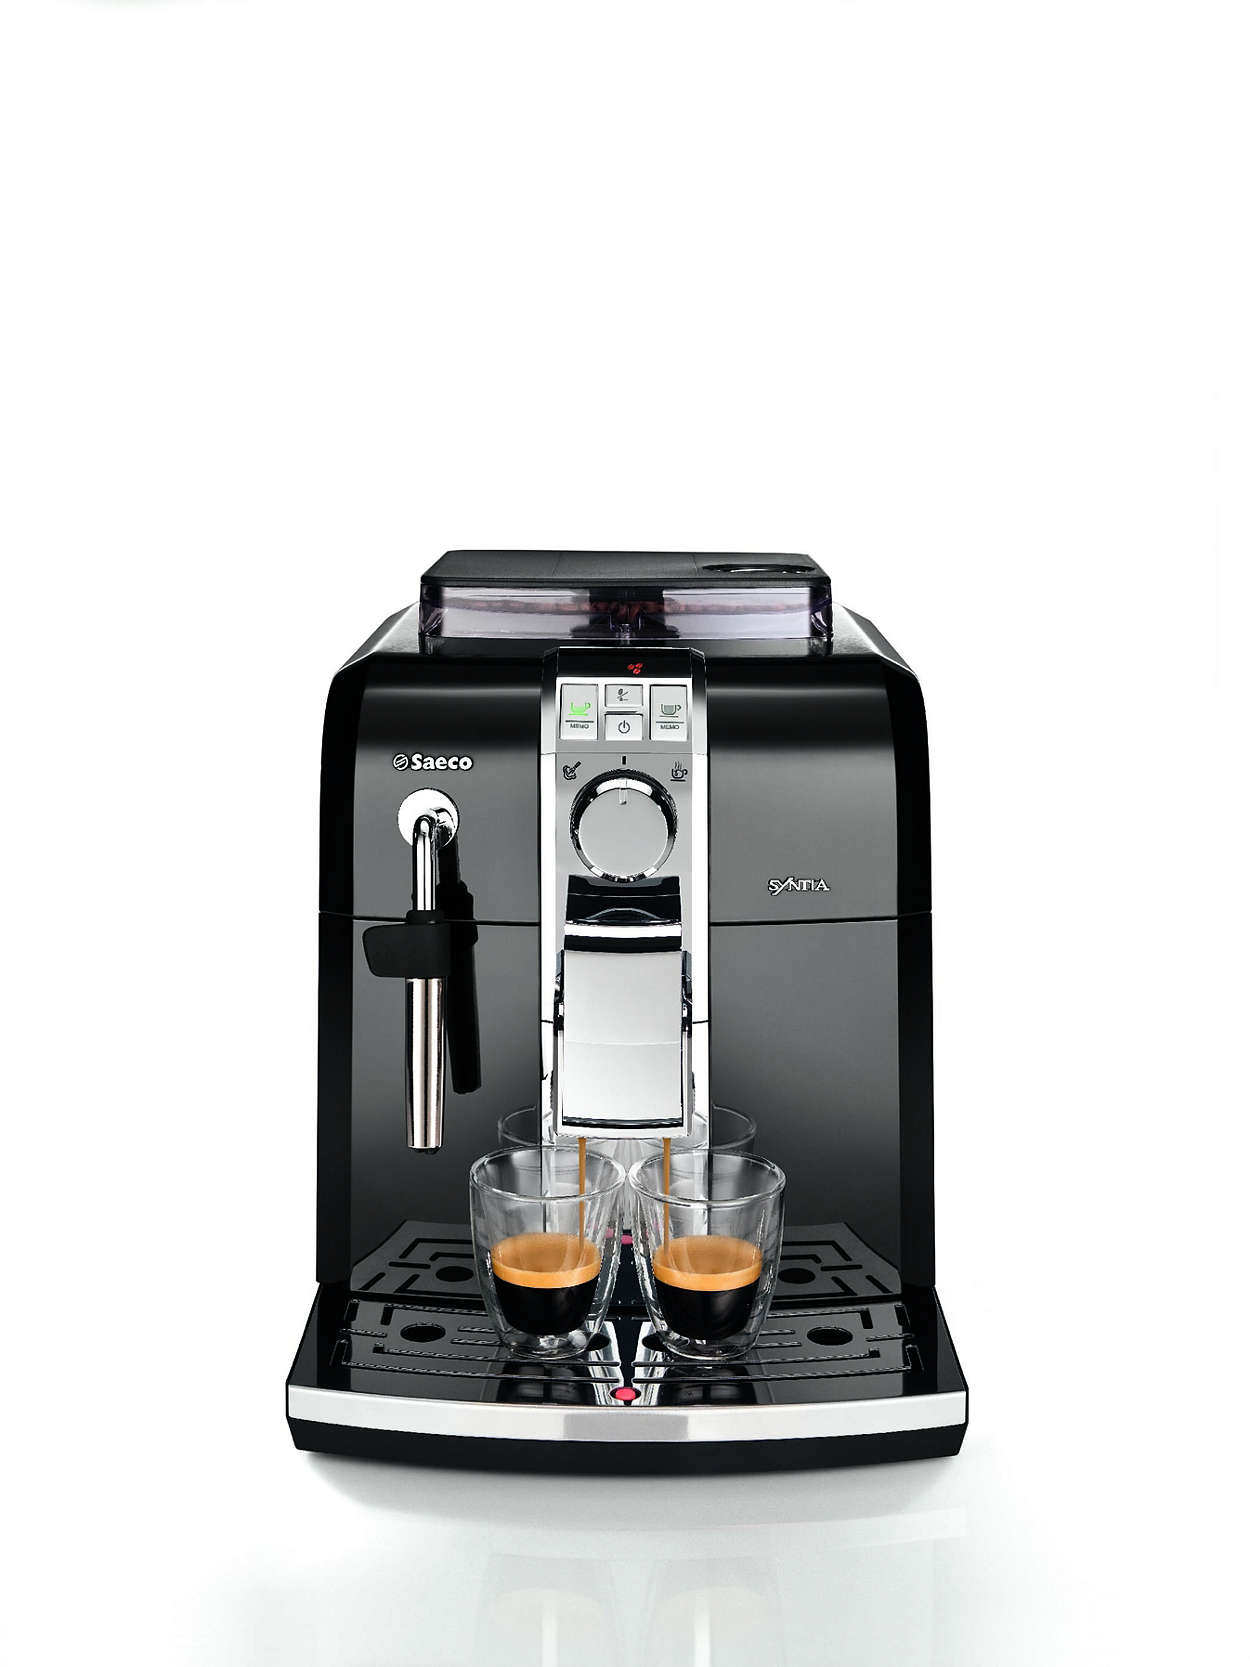 syntia super automatic espresso machine ri9833 47 saeco. Black Bedroom Furniture Sets. Home Design Ideas